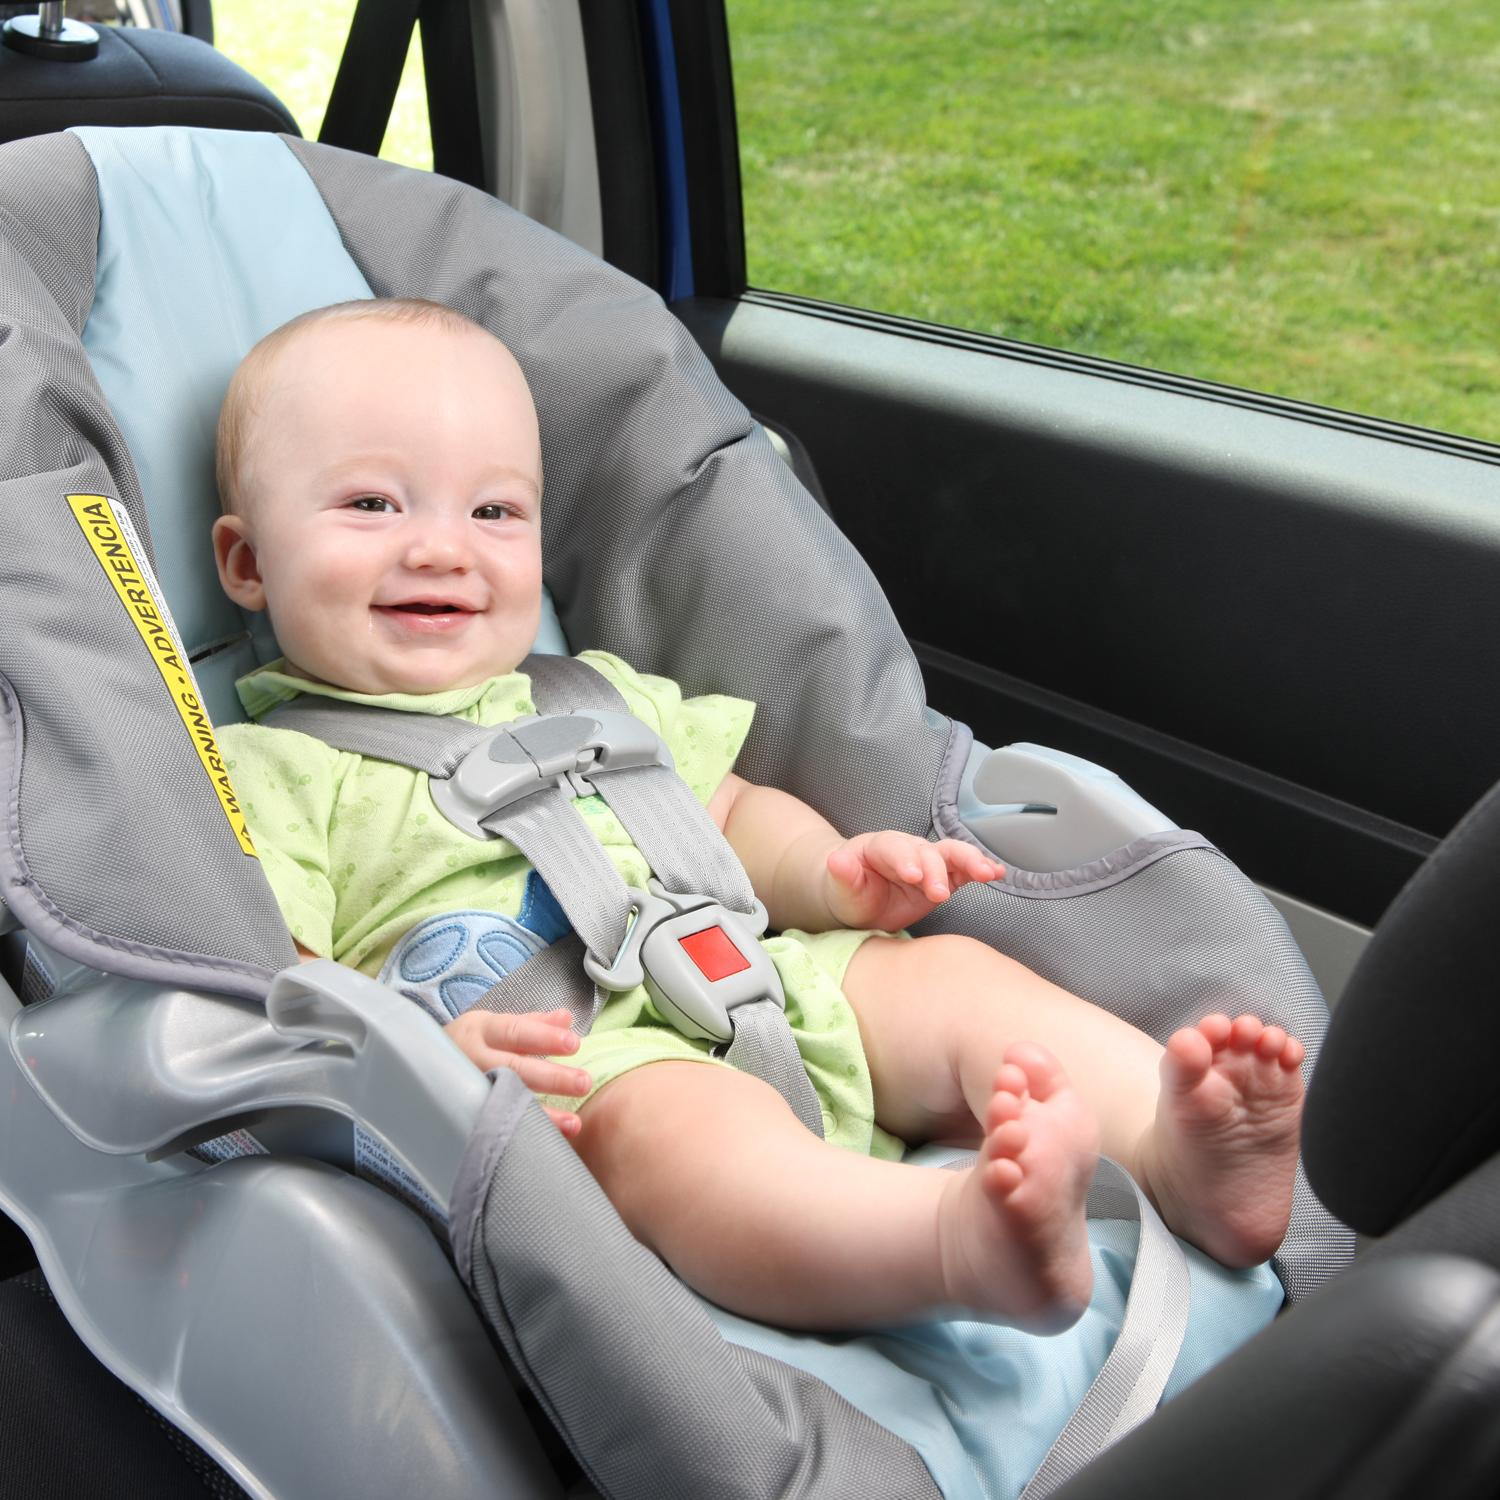 Your Car Seat Safety Questions Answered | Parenting